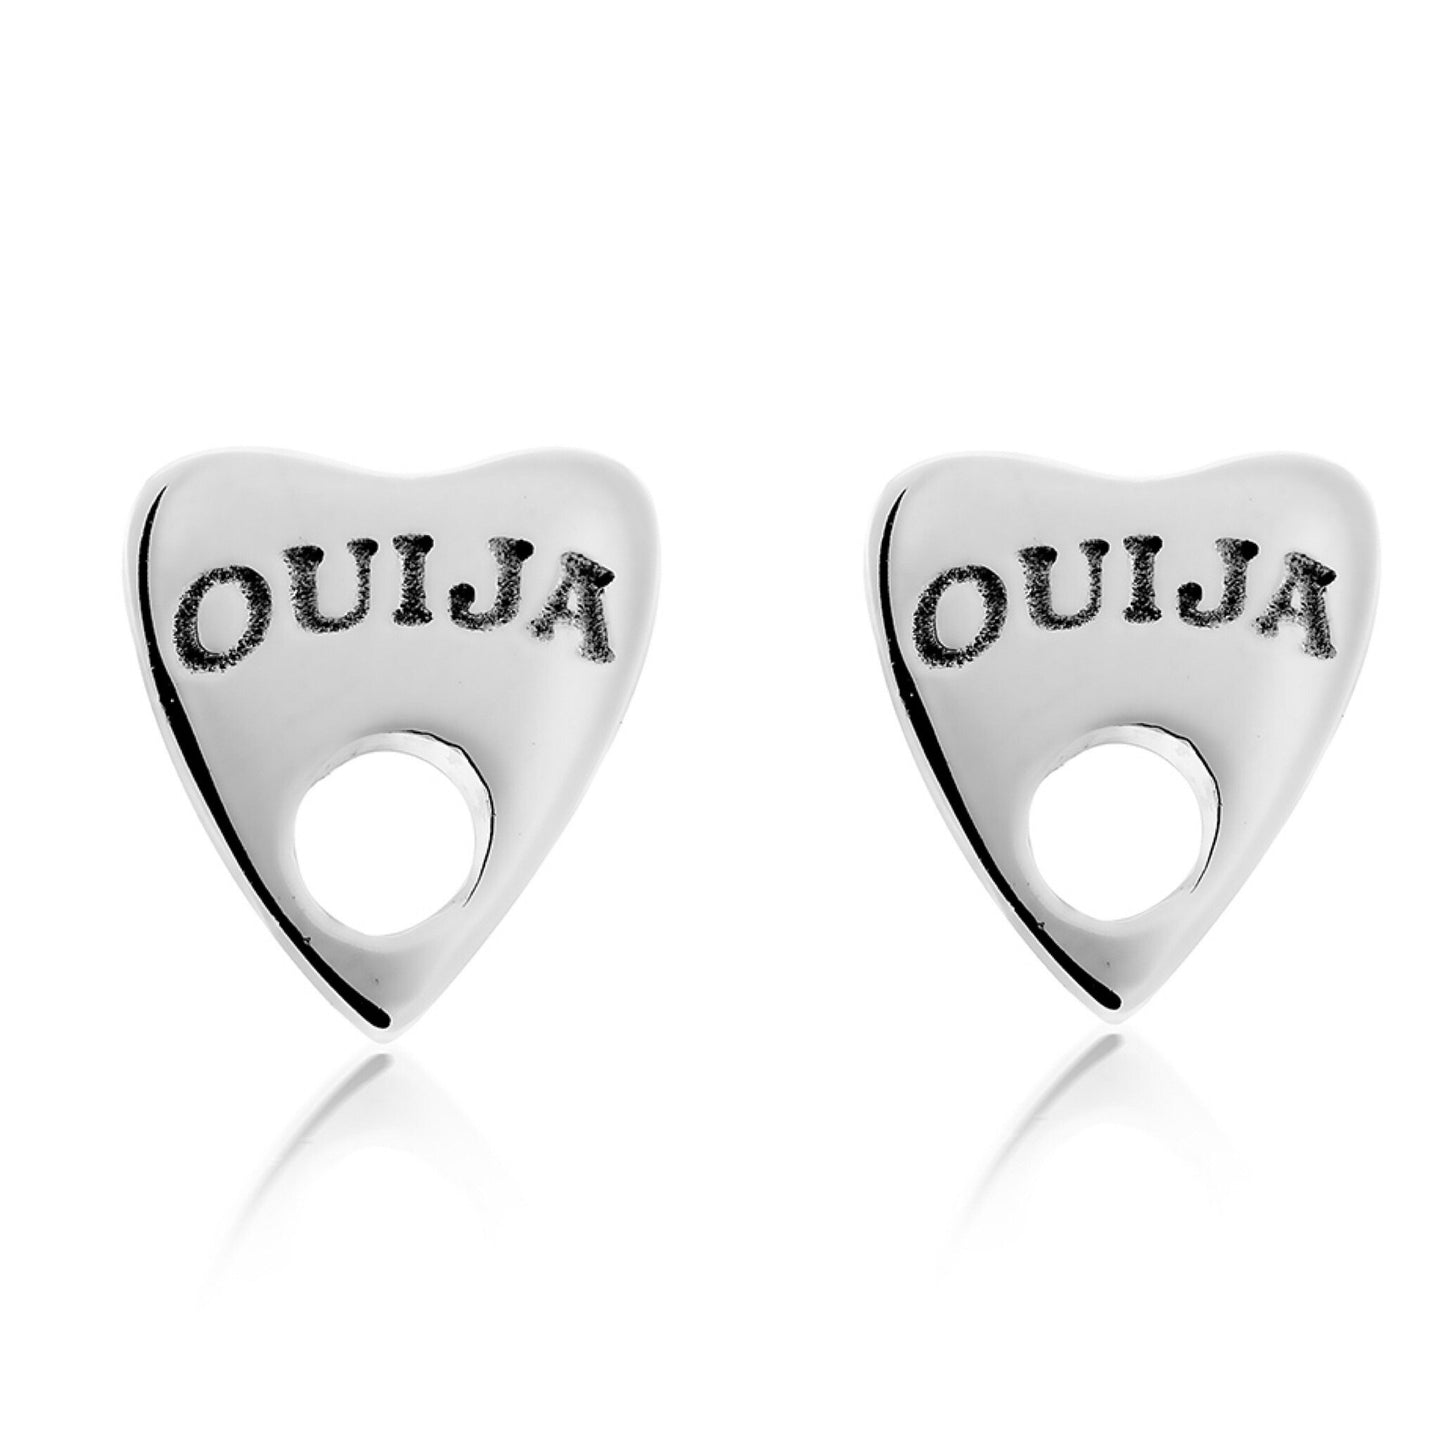 Ouija Silver Earrings - The Collective Dublin